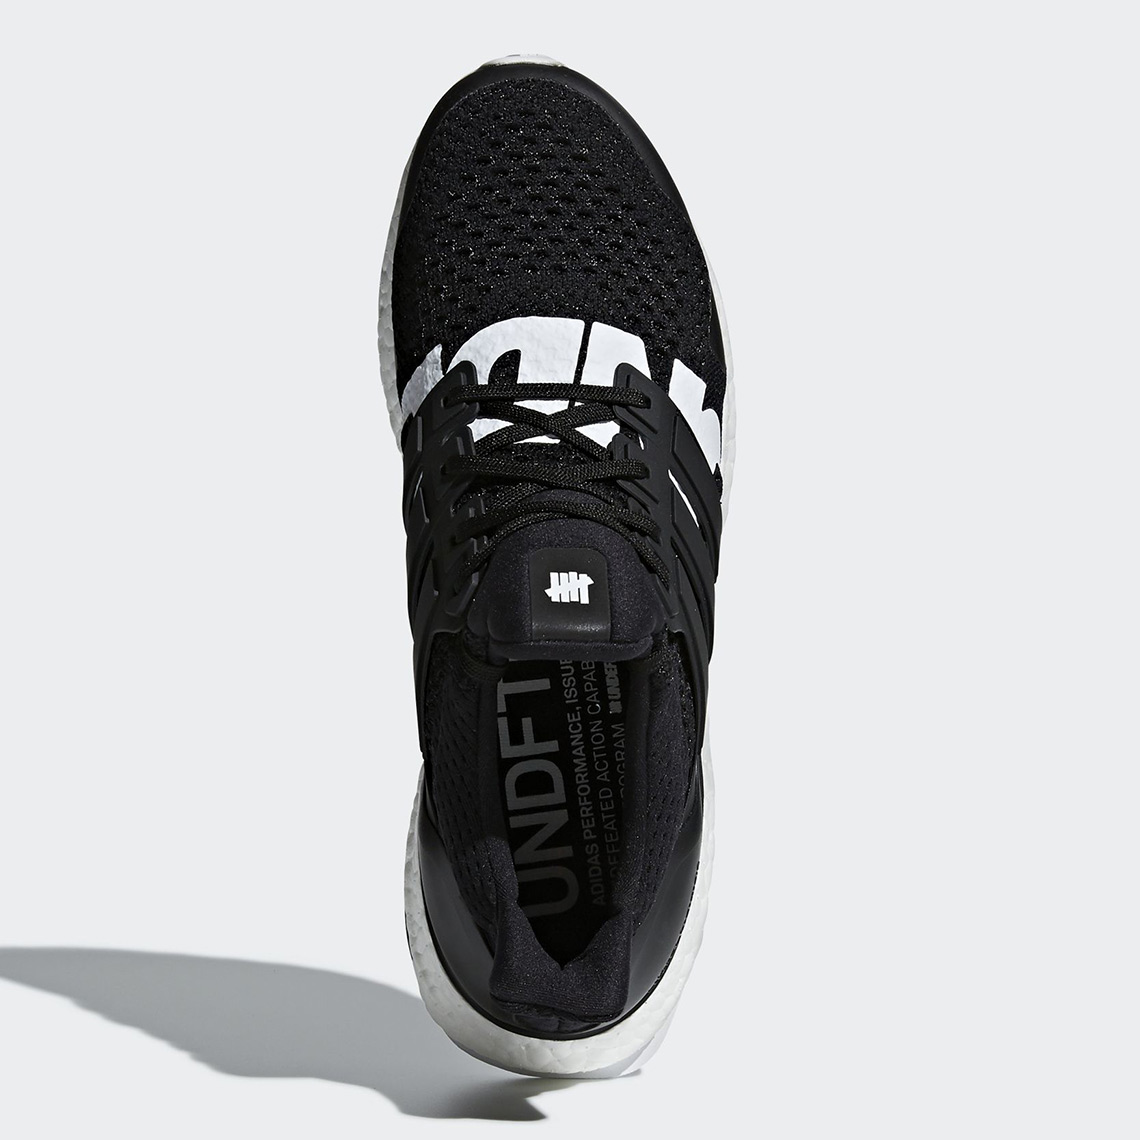 4db560d1f5032e Undefeated adidas Ultra Boost adios 3 Release Date + Photos ...